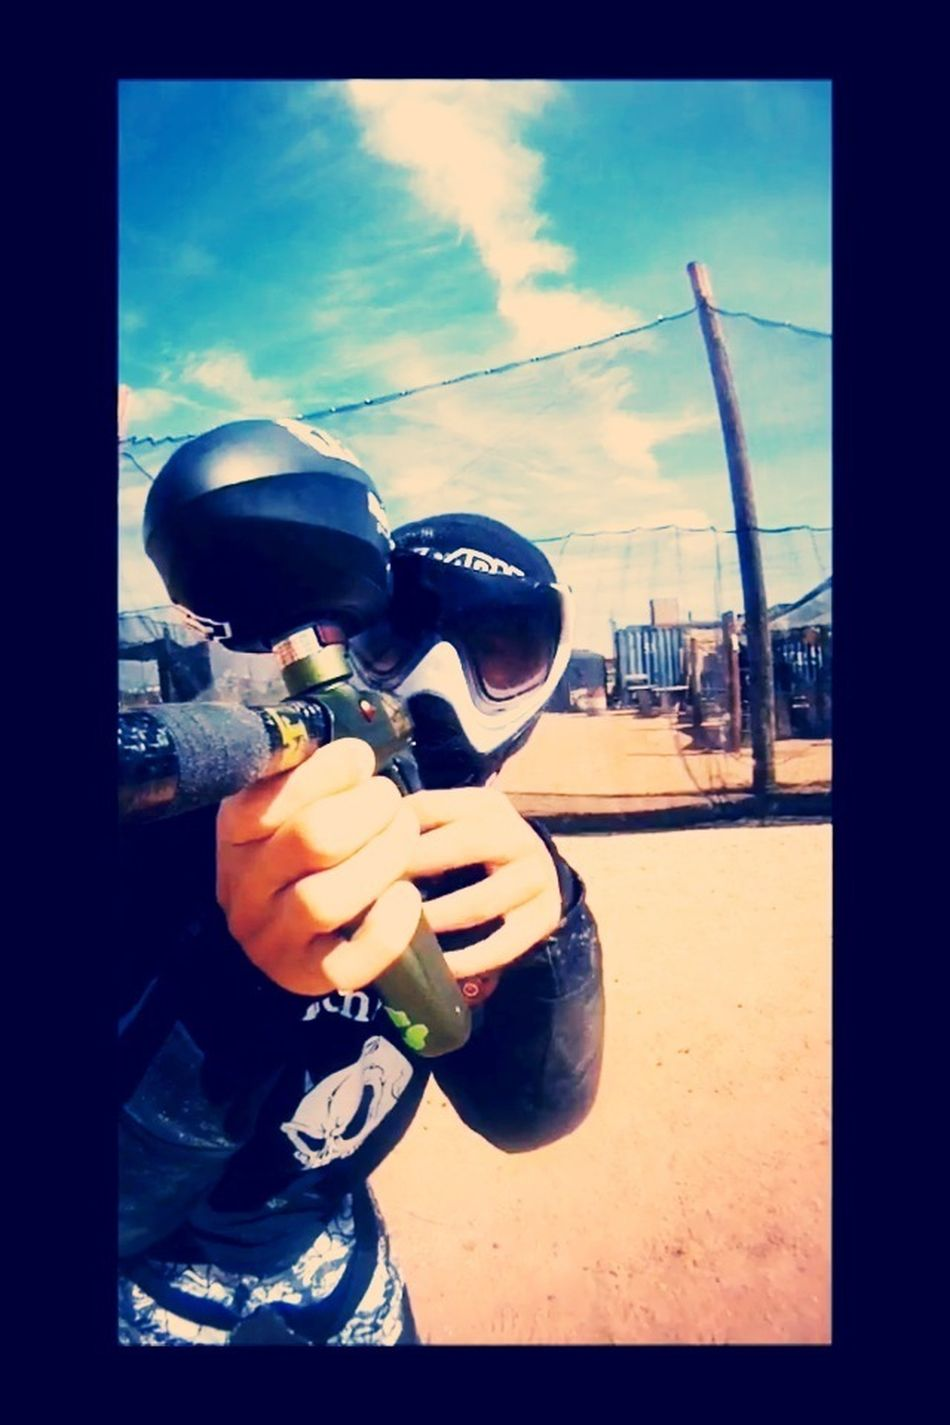 #paintball #hkarmy #gopro